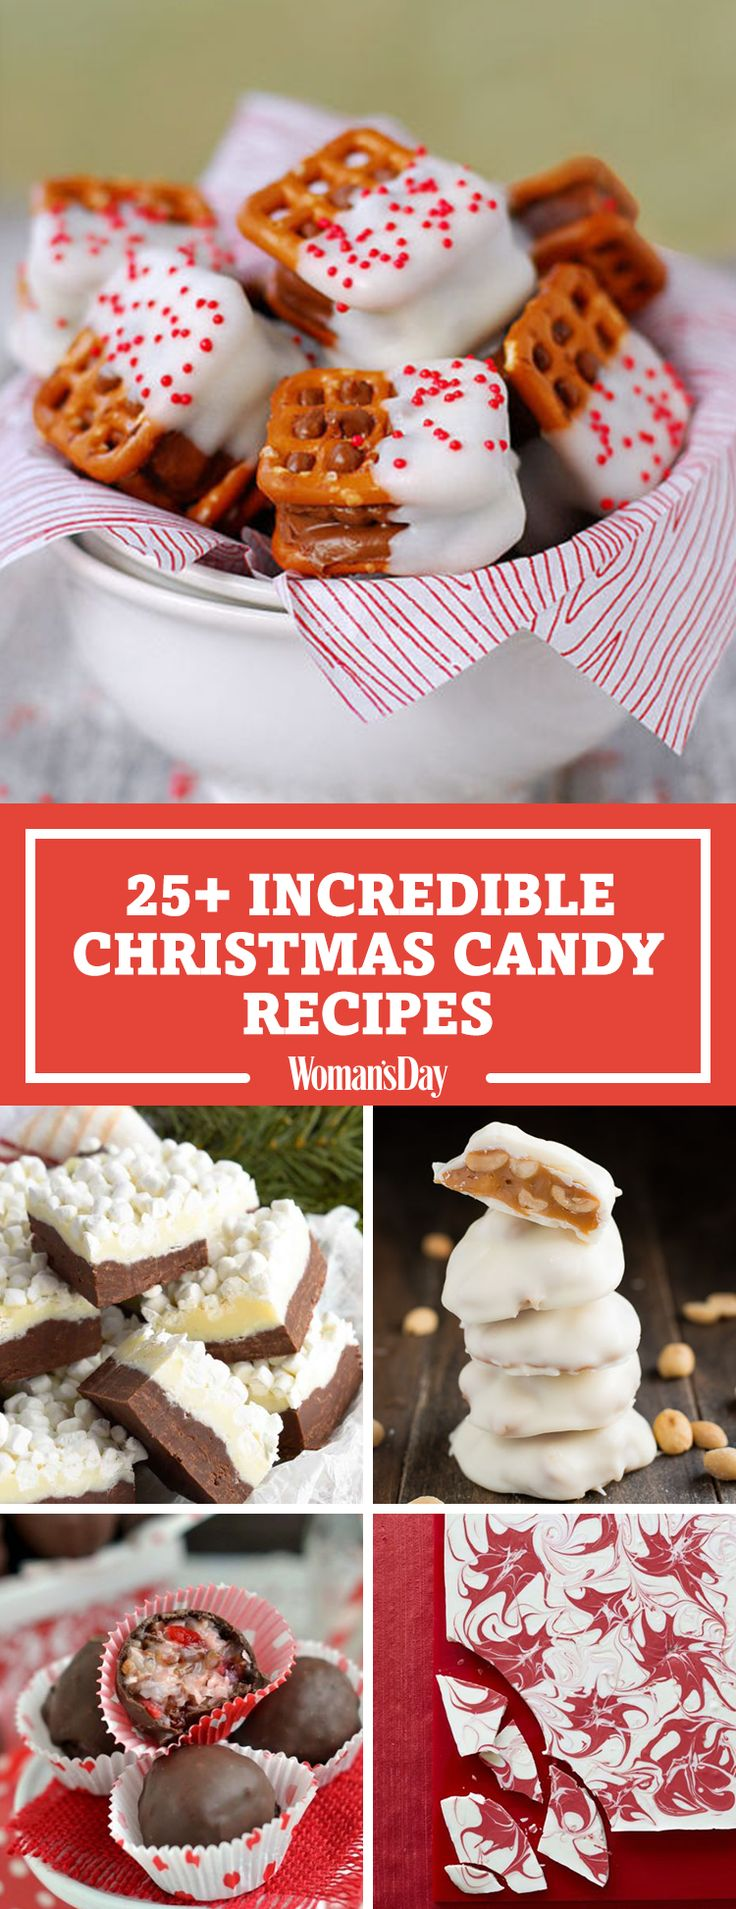 These festive Christmas candy sweets will get everyone in the holiday spirit. Make these incredible Christmas candies for holiday party favors. Your guests will love munching on Candy Bar Pretzel Bites after they eat a delicious Christmas dinner!